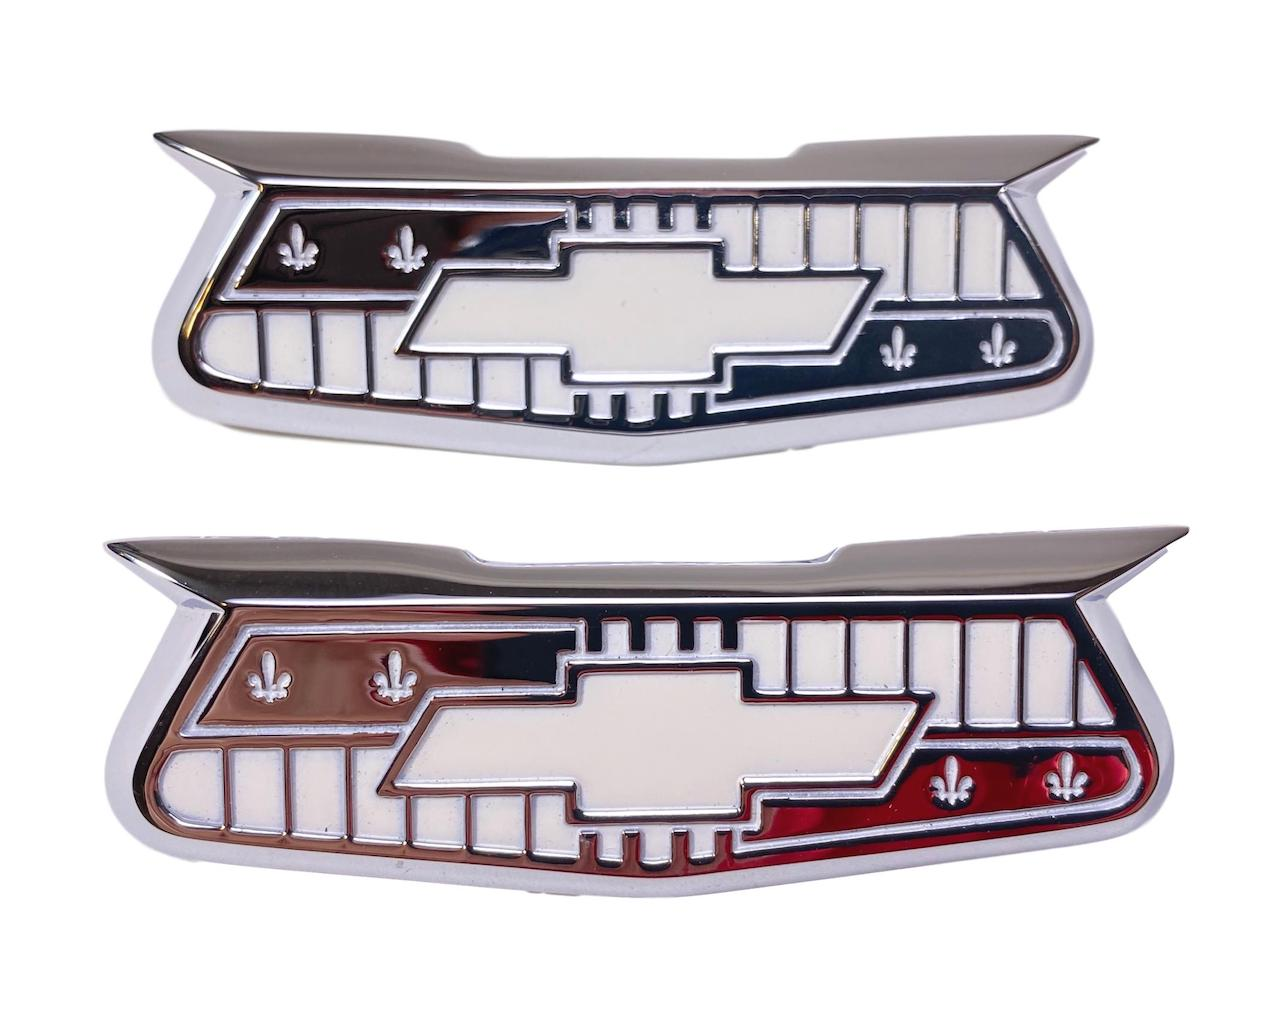 1956 Chevy Chrome Bel Air Crest Emblems